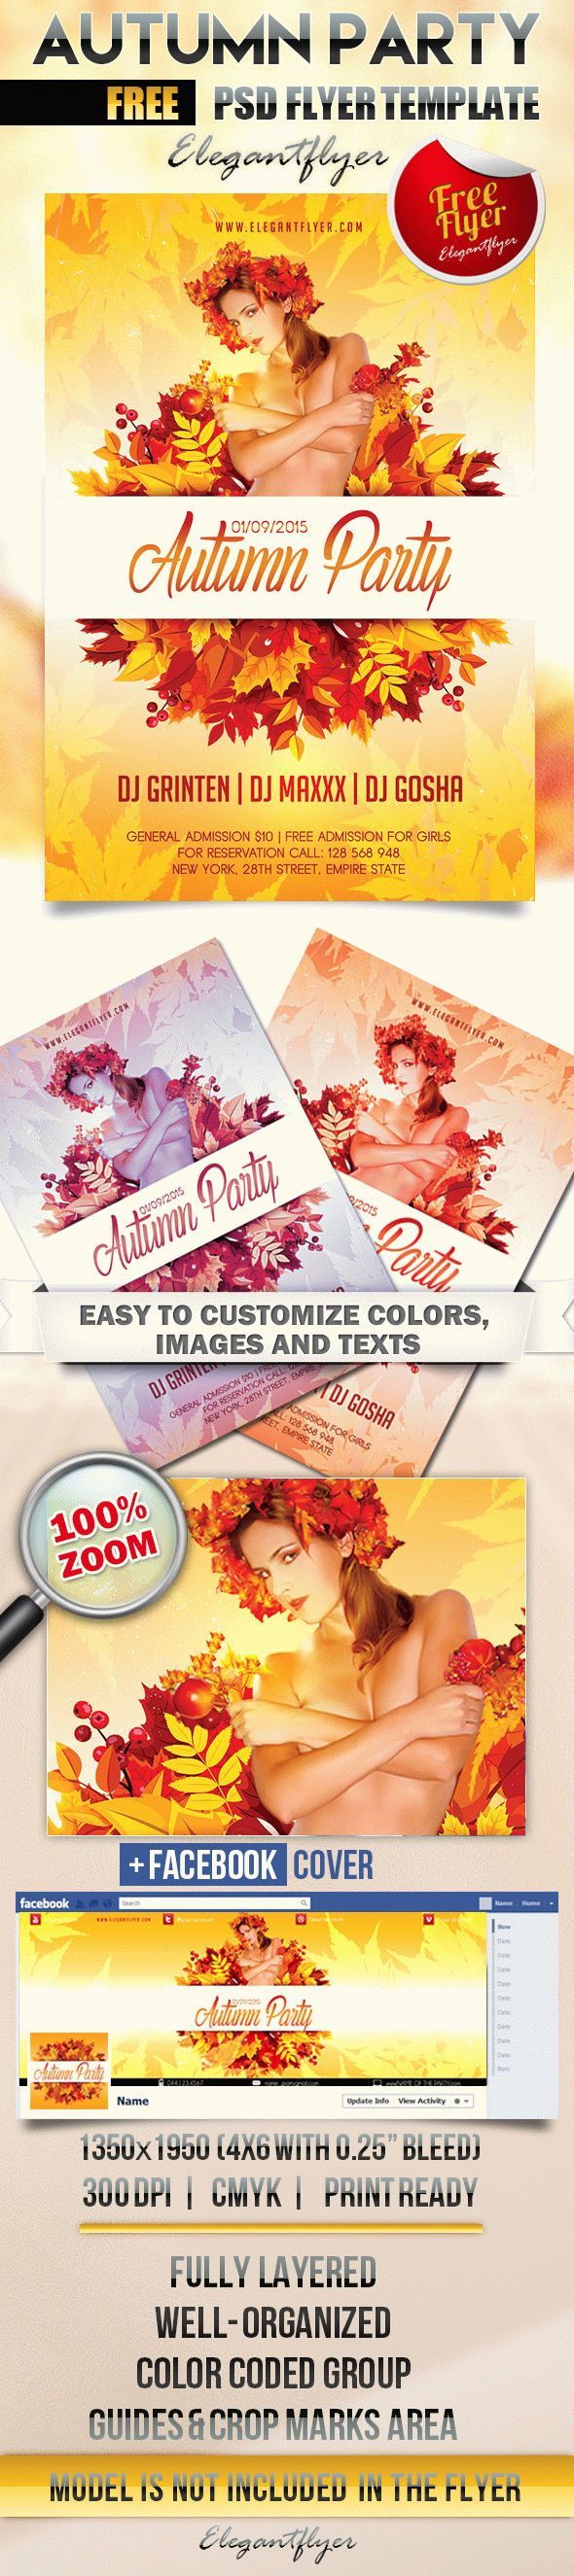 Free Flyer Template Downloads from www.psdtemplatesblog.com